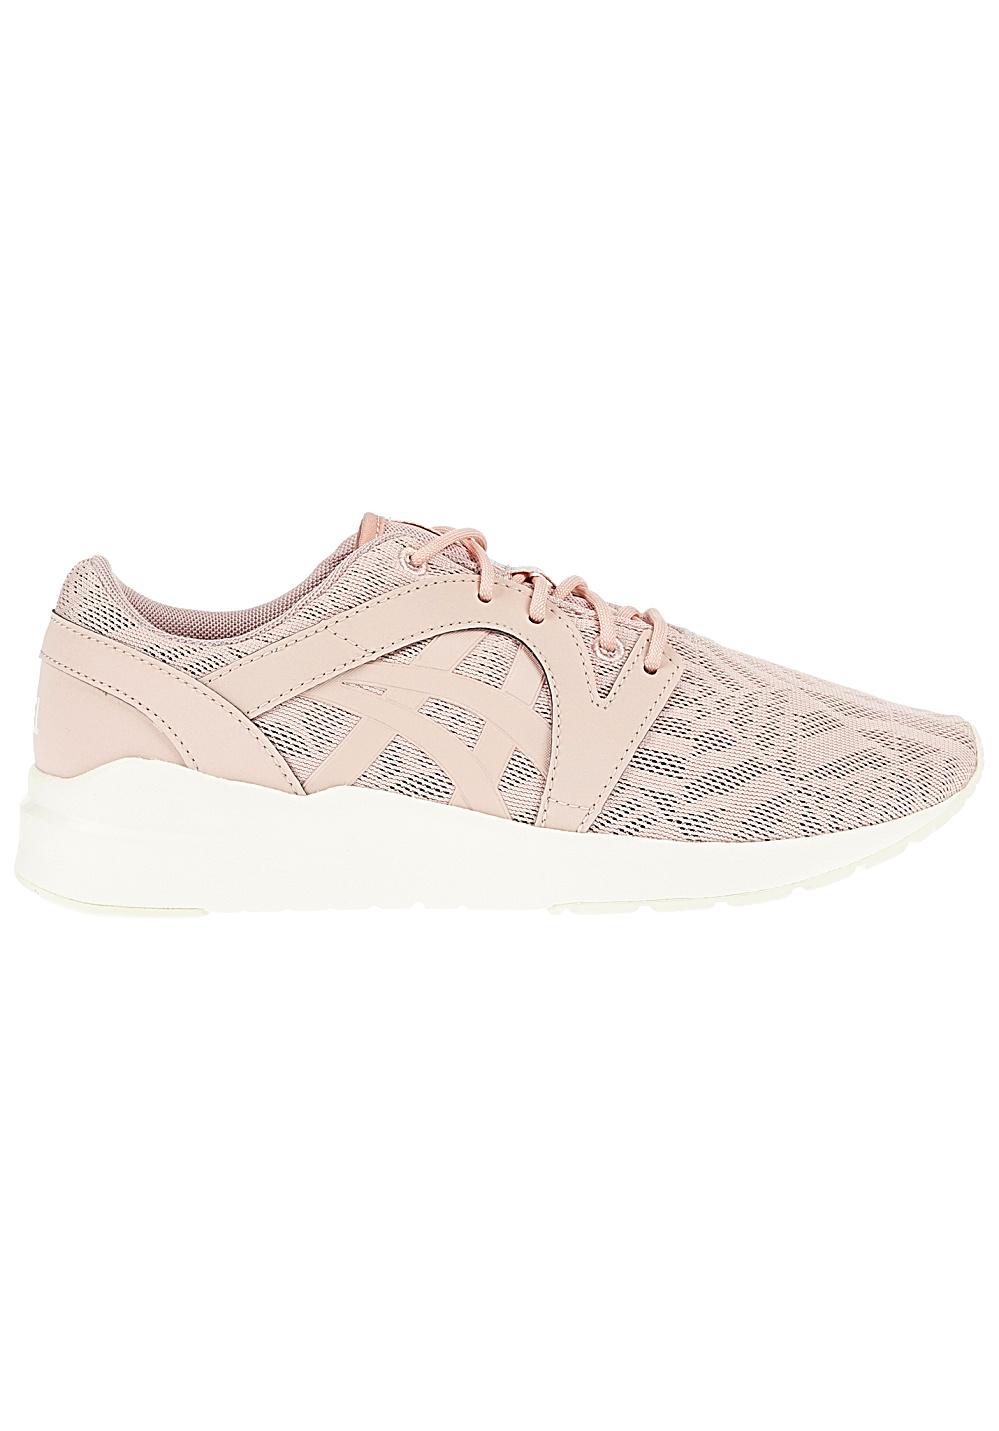 buy online 51b09 0ae7a Next. -30%. Asics Tiger. Gel-Lyte Komachi - Baskets pour Femme